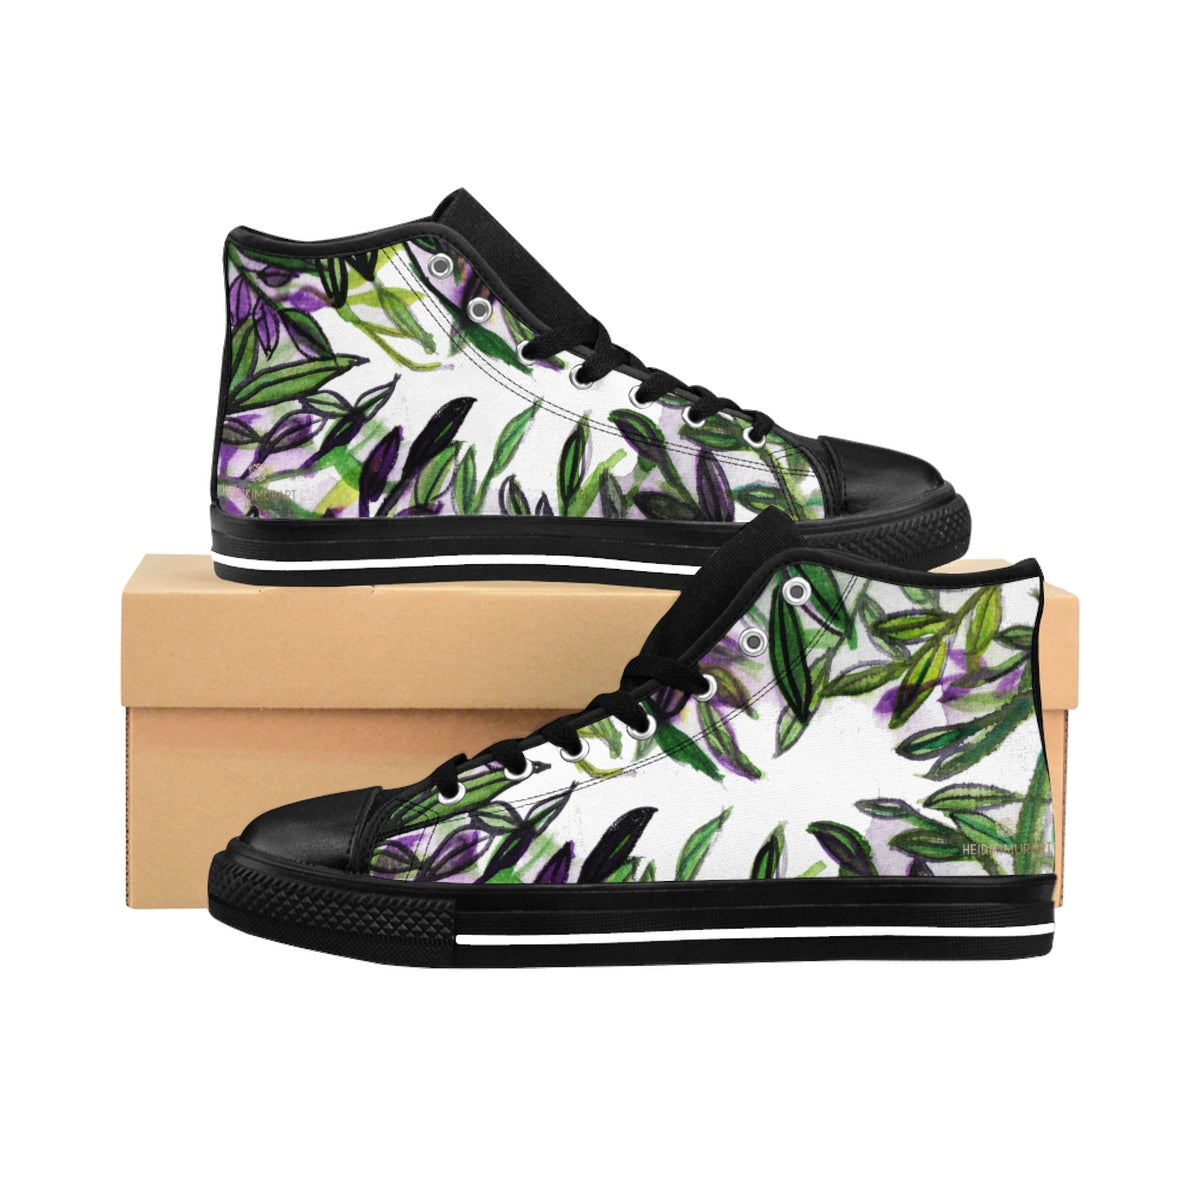 Green Tropical Leaf Print Designer Men's High-top Sneakers Tennis Running Shoes-Men's High Top Sneakers-Black-US 9-Heidi Kimura Art LLC Green Tropical Leaf Men's Sneakers, Green Tropical Leaf Print Designer Men's High-top Sneakers Running Tennis Shoes, Floral High Tops, Mens Floral Shoes, Hawaiian Floral Print Sneakers  (US Size: 6-14)